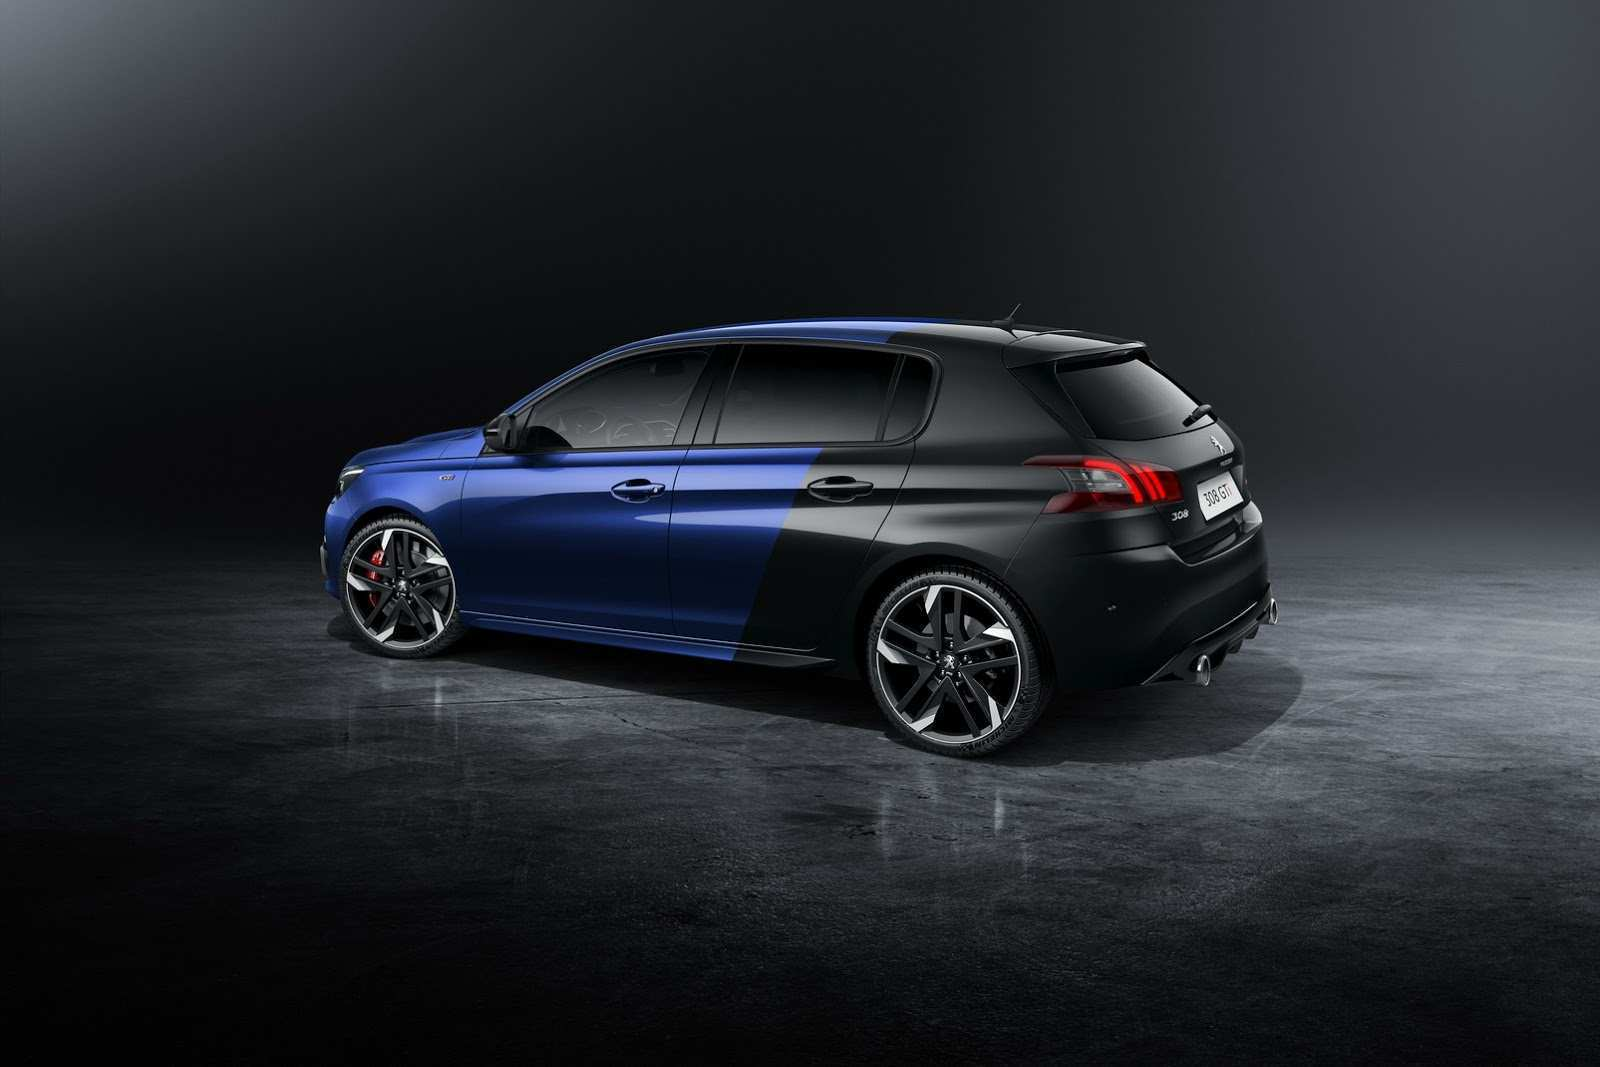 95 The 2019 Peugeot 308 Gti Review by 2019 Peugeot 308 Gti